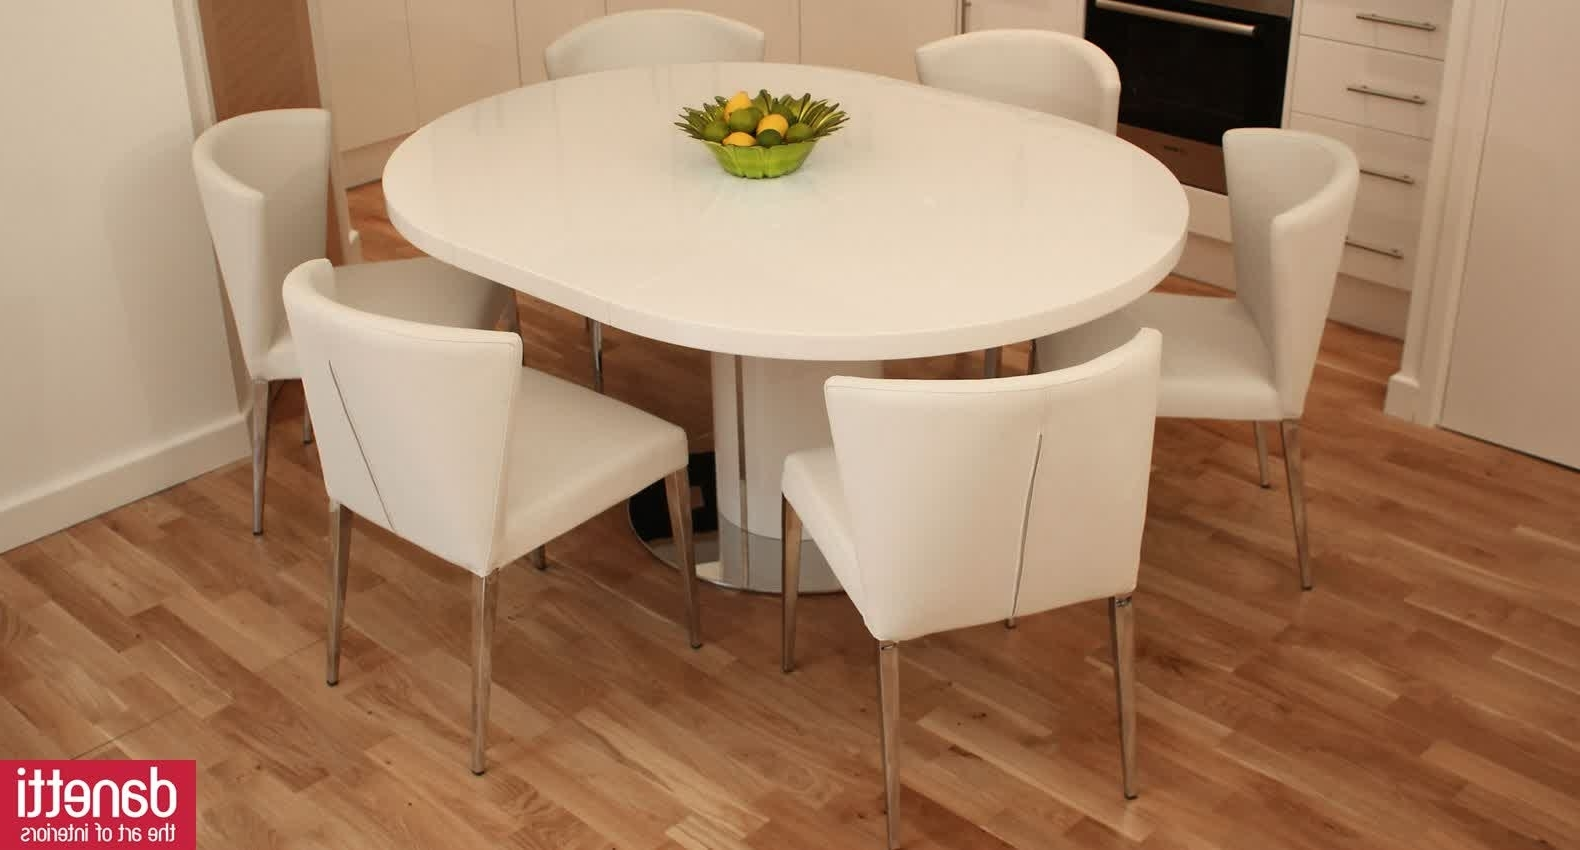 2018 Small Sets For Set Plaster Silhouette Base Room Pedestal Extendable within Small Extendable Dining Table Sets